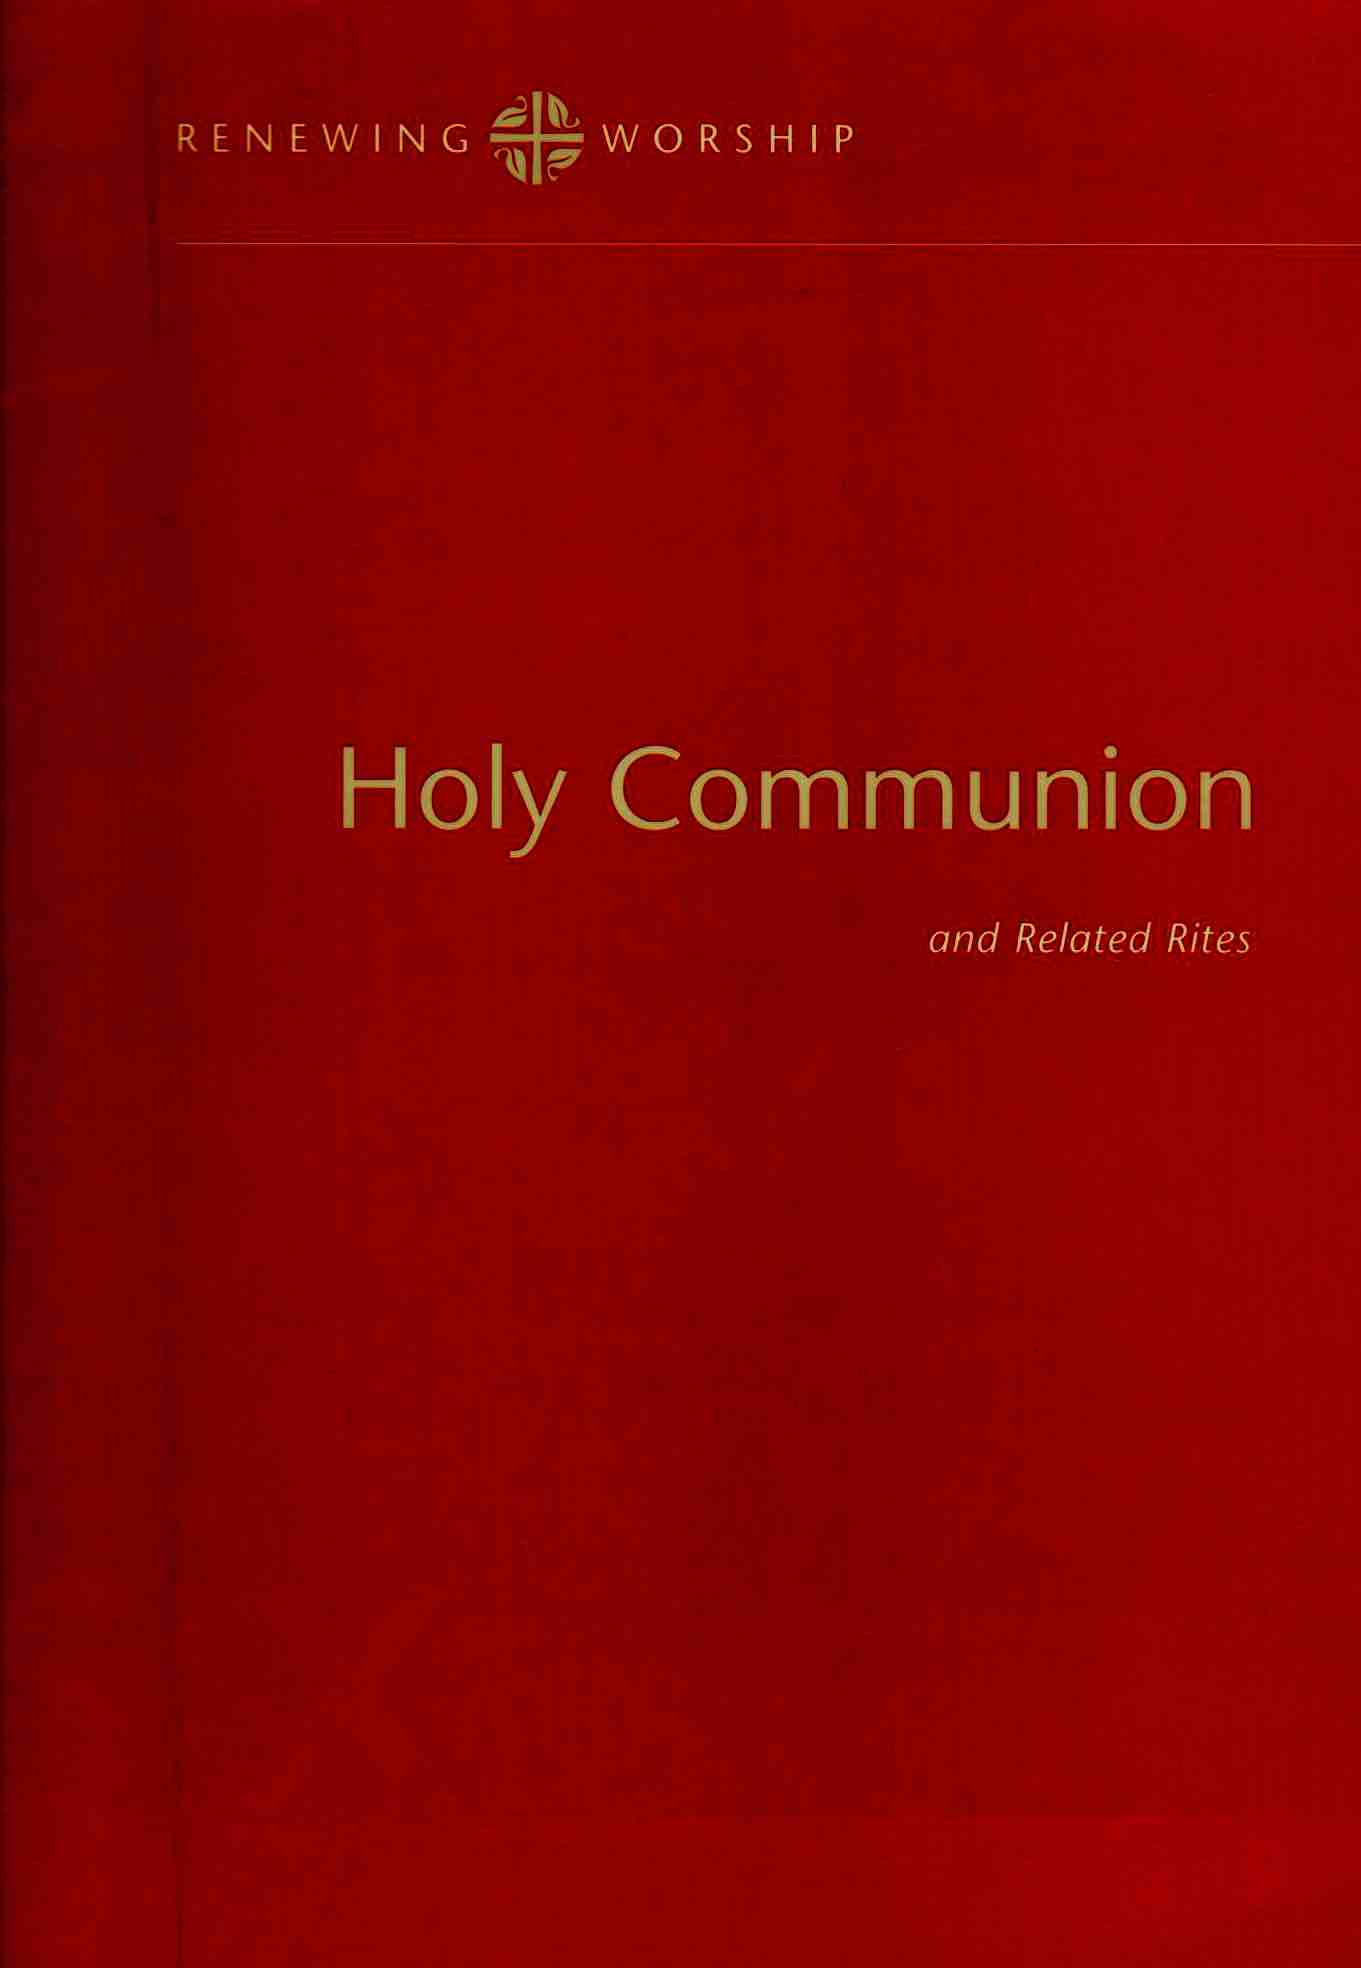 Cover of Holy Communion and Related Rites